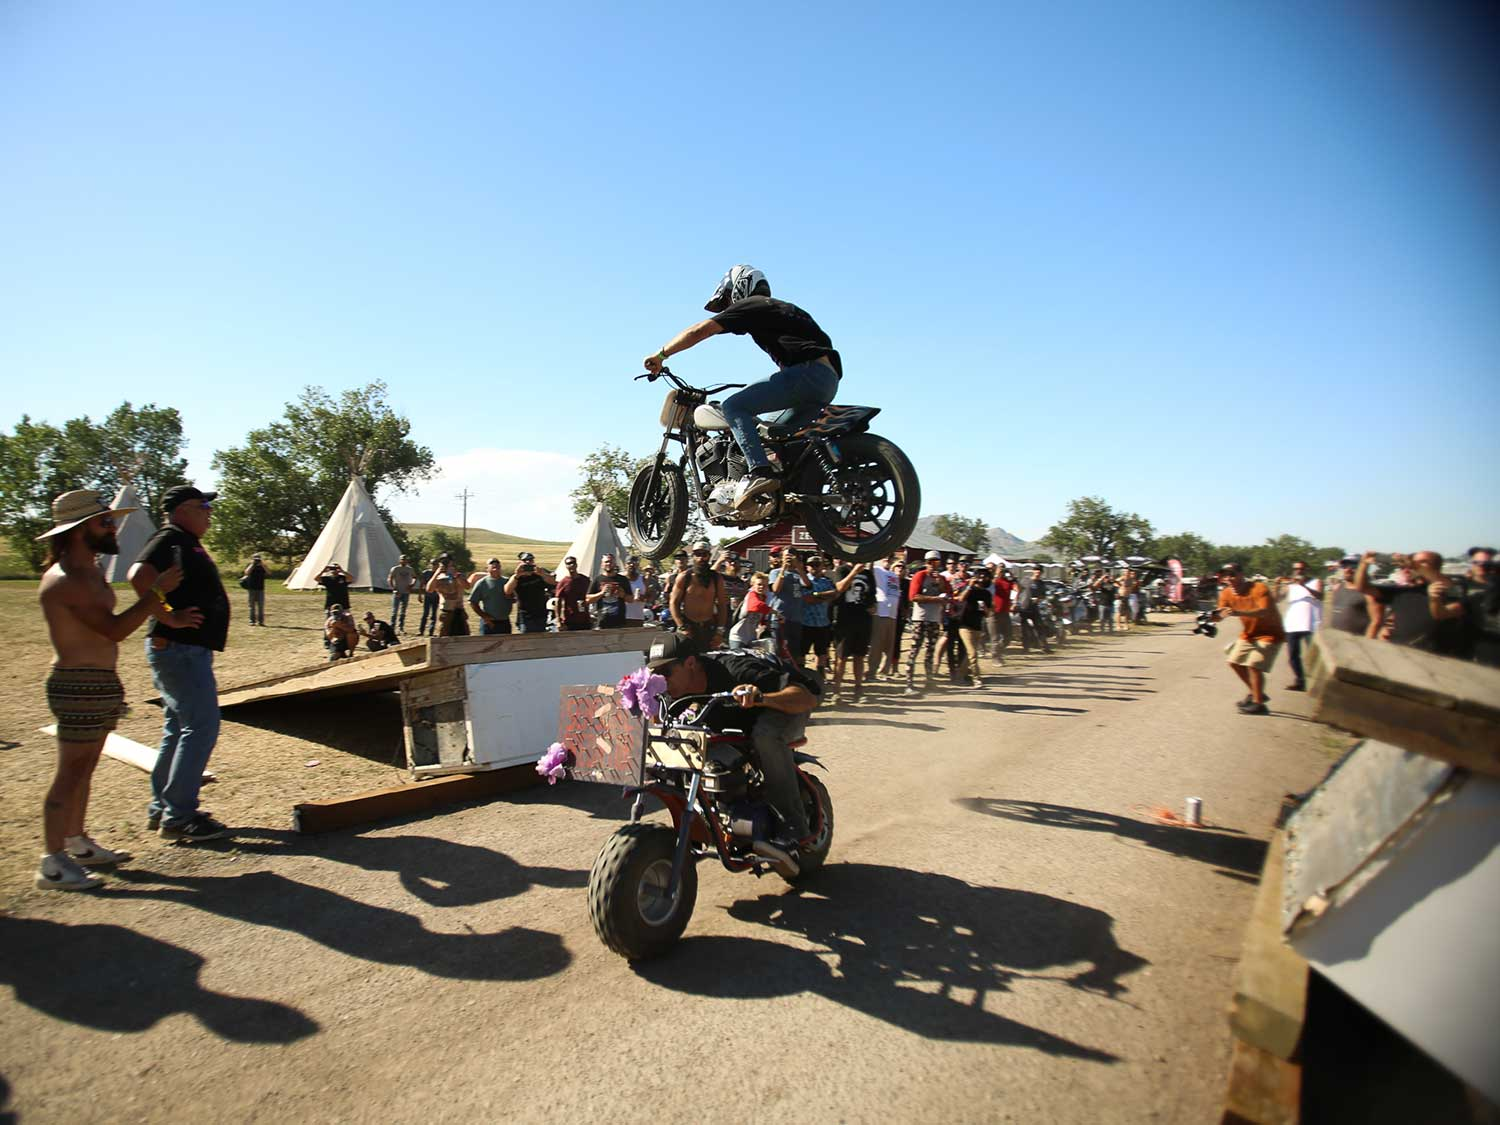 Sportster jumps over a rider on a minibike at Sturgis 2020